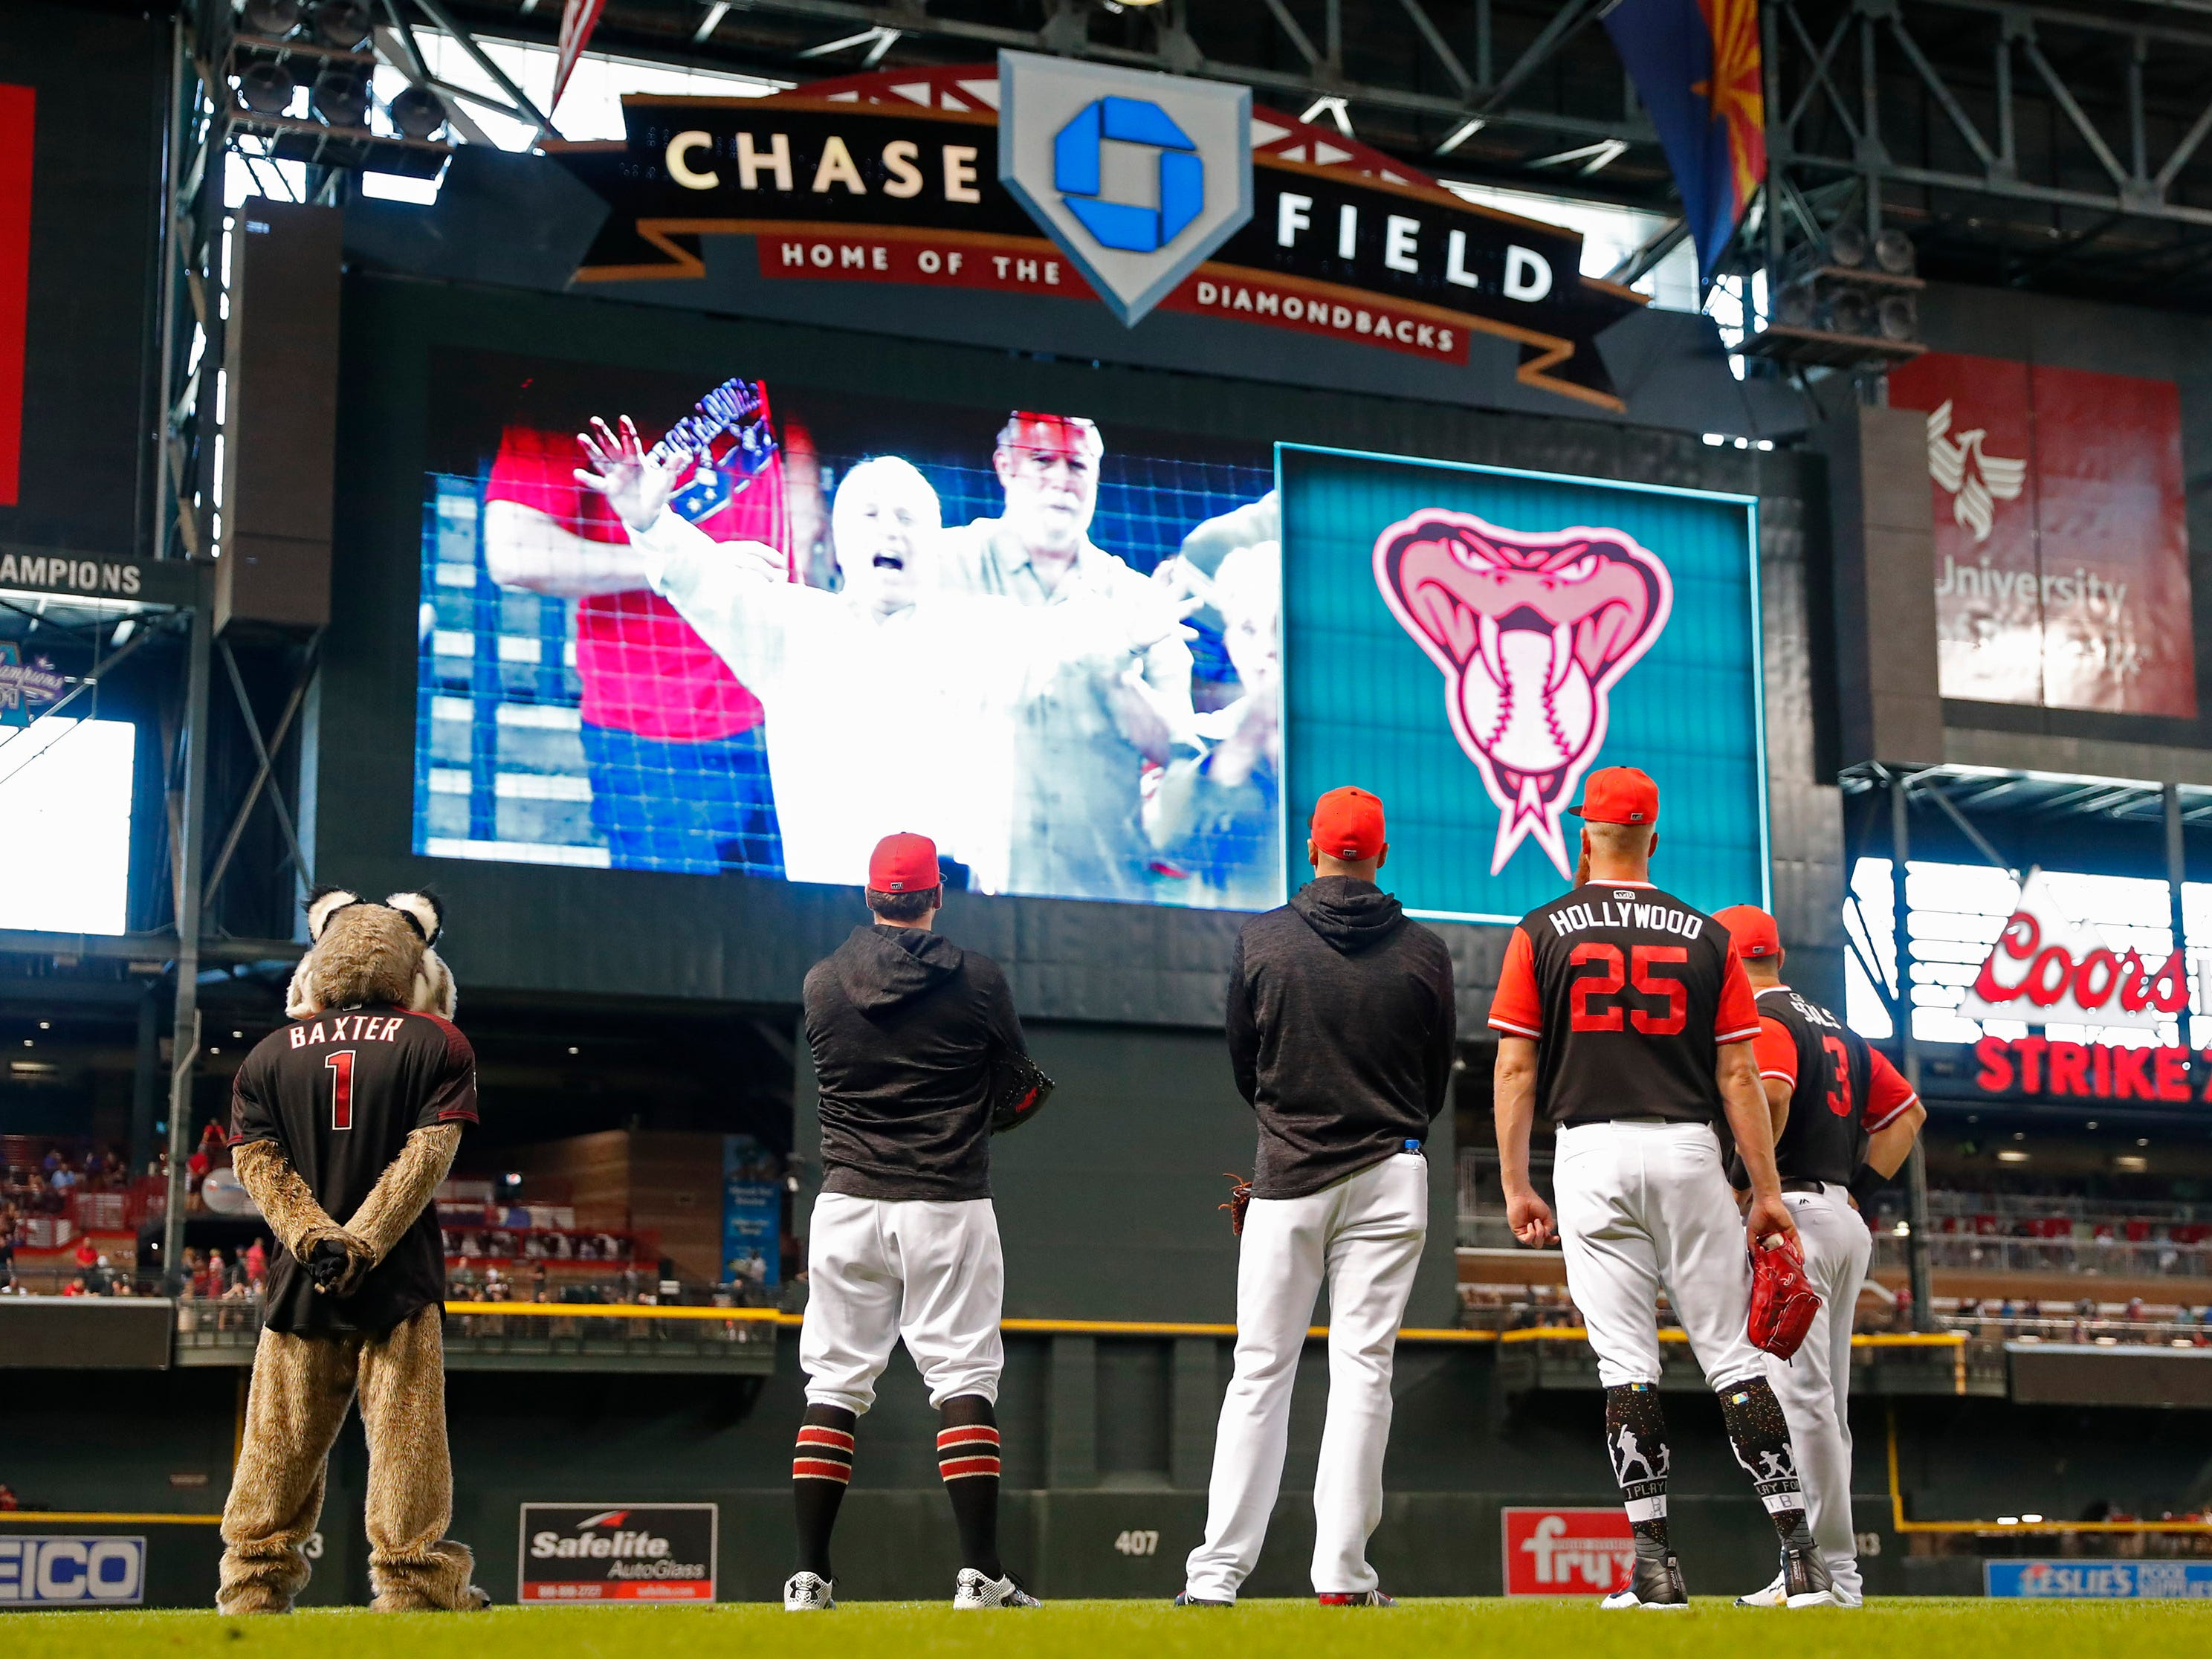 Arizona Diamondbacks players watch a video tribute to Sen. John McCain before playing against the Seattle Mariners at Chase Field in Phoenix, Ariz. August 26. 2018. The six-term Arizona senator died Saturday at age 81.